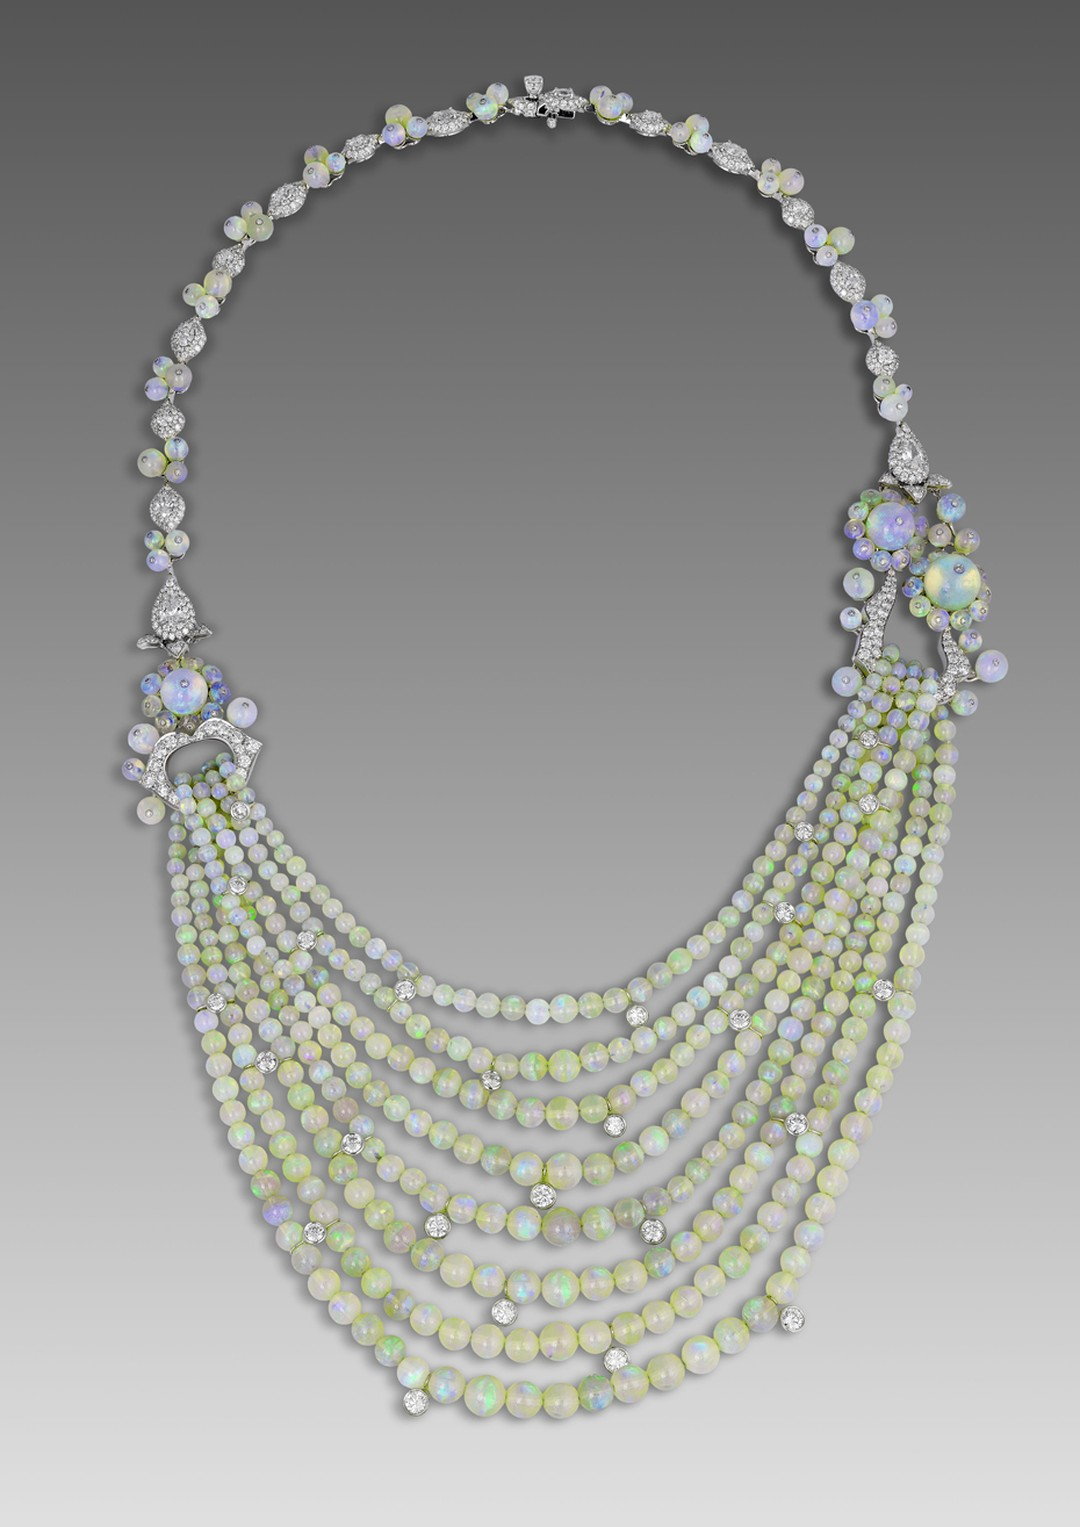 David Morris necklace with opal beads from the 1920s alongside brilliant-cut diamonds.